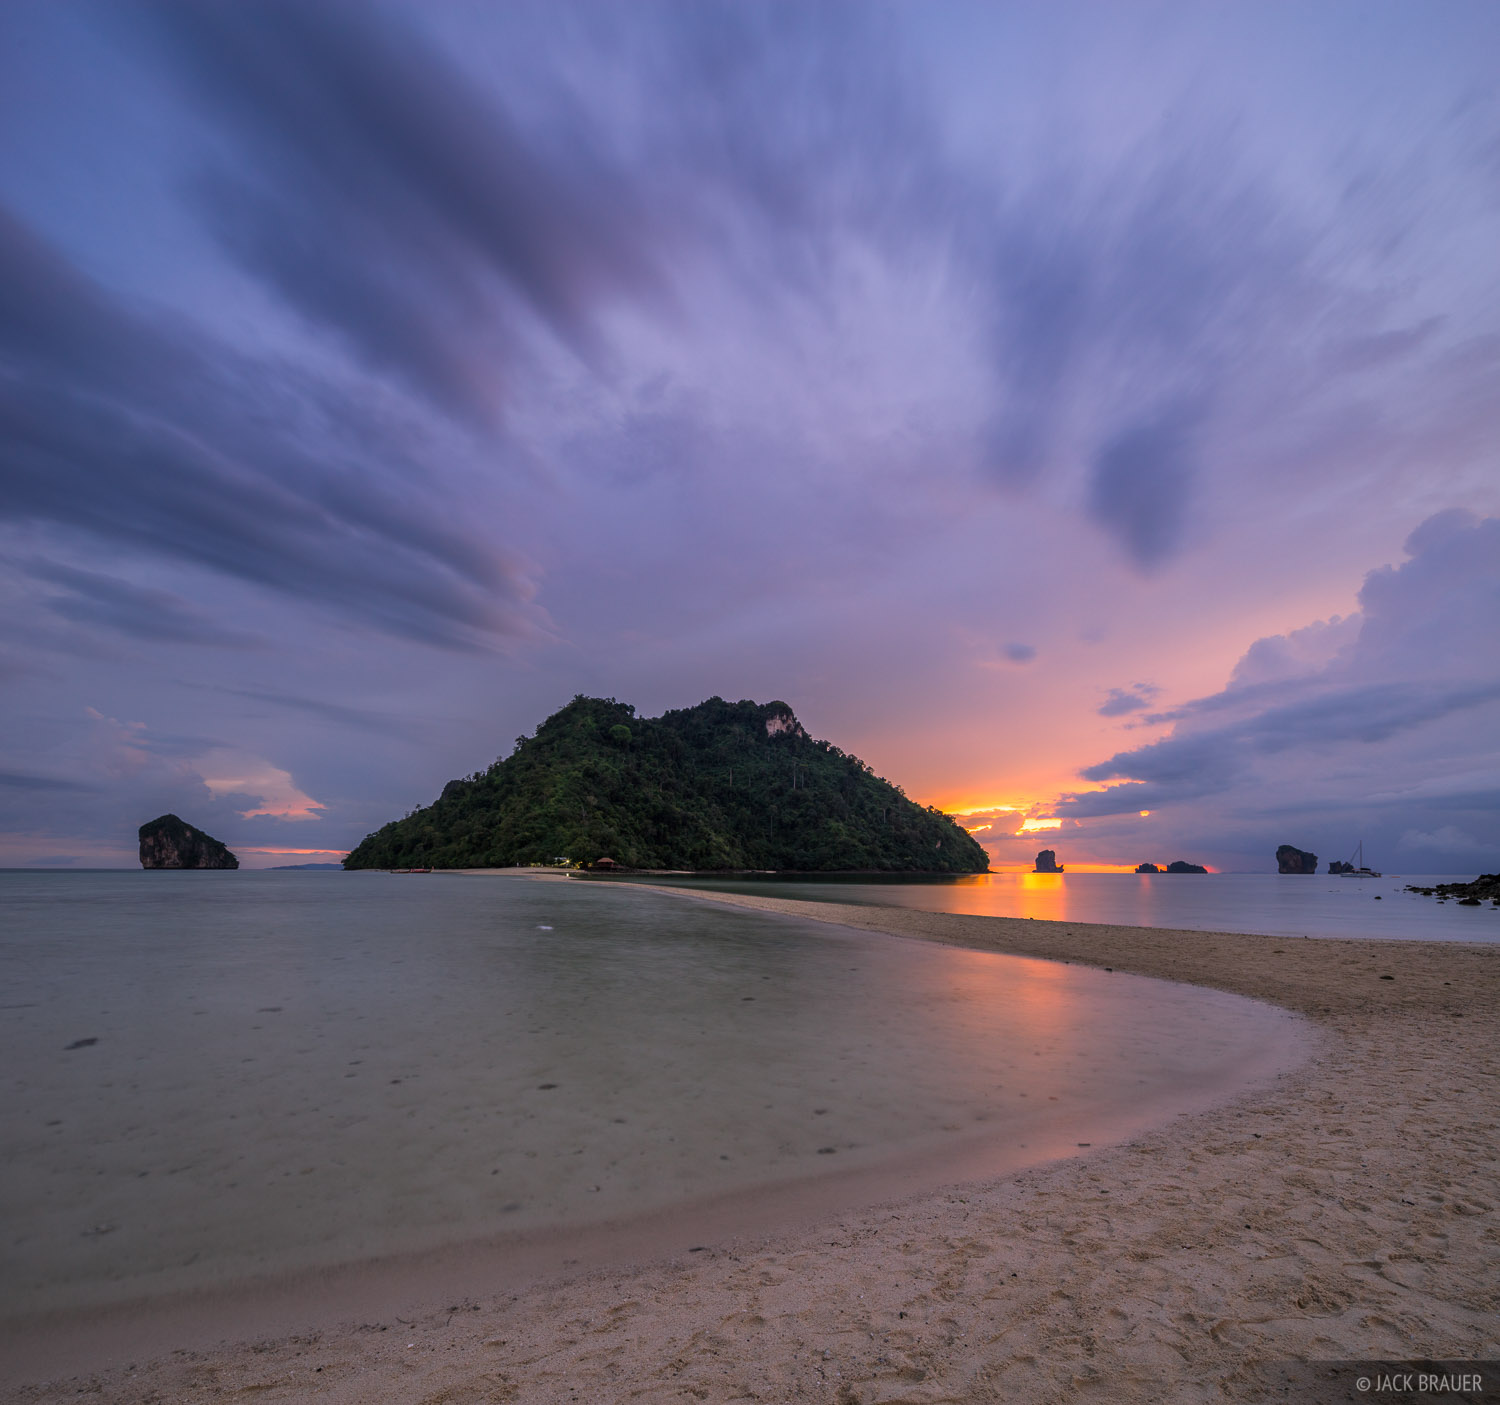 Thailand, Tup Island, Andaman Sea, beach, Ao Nang, photo